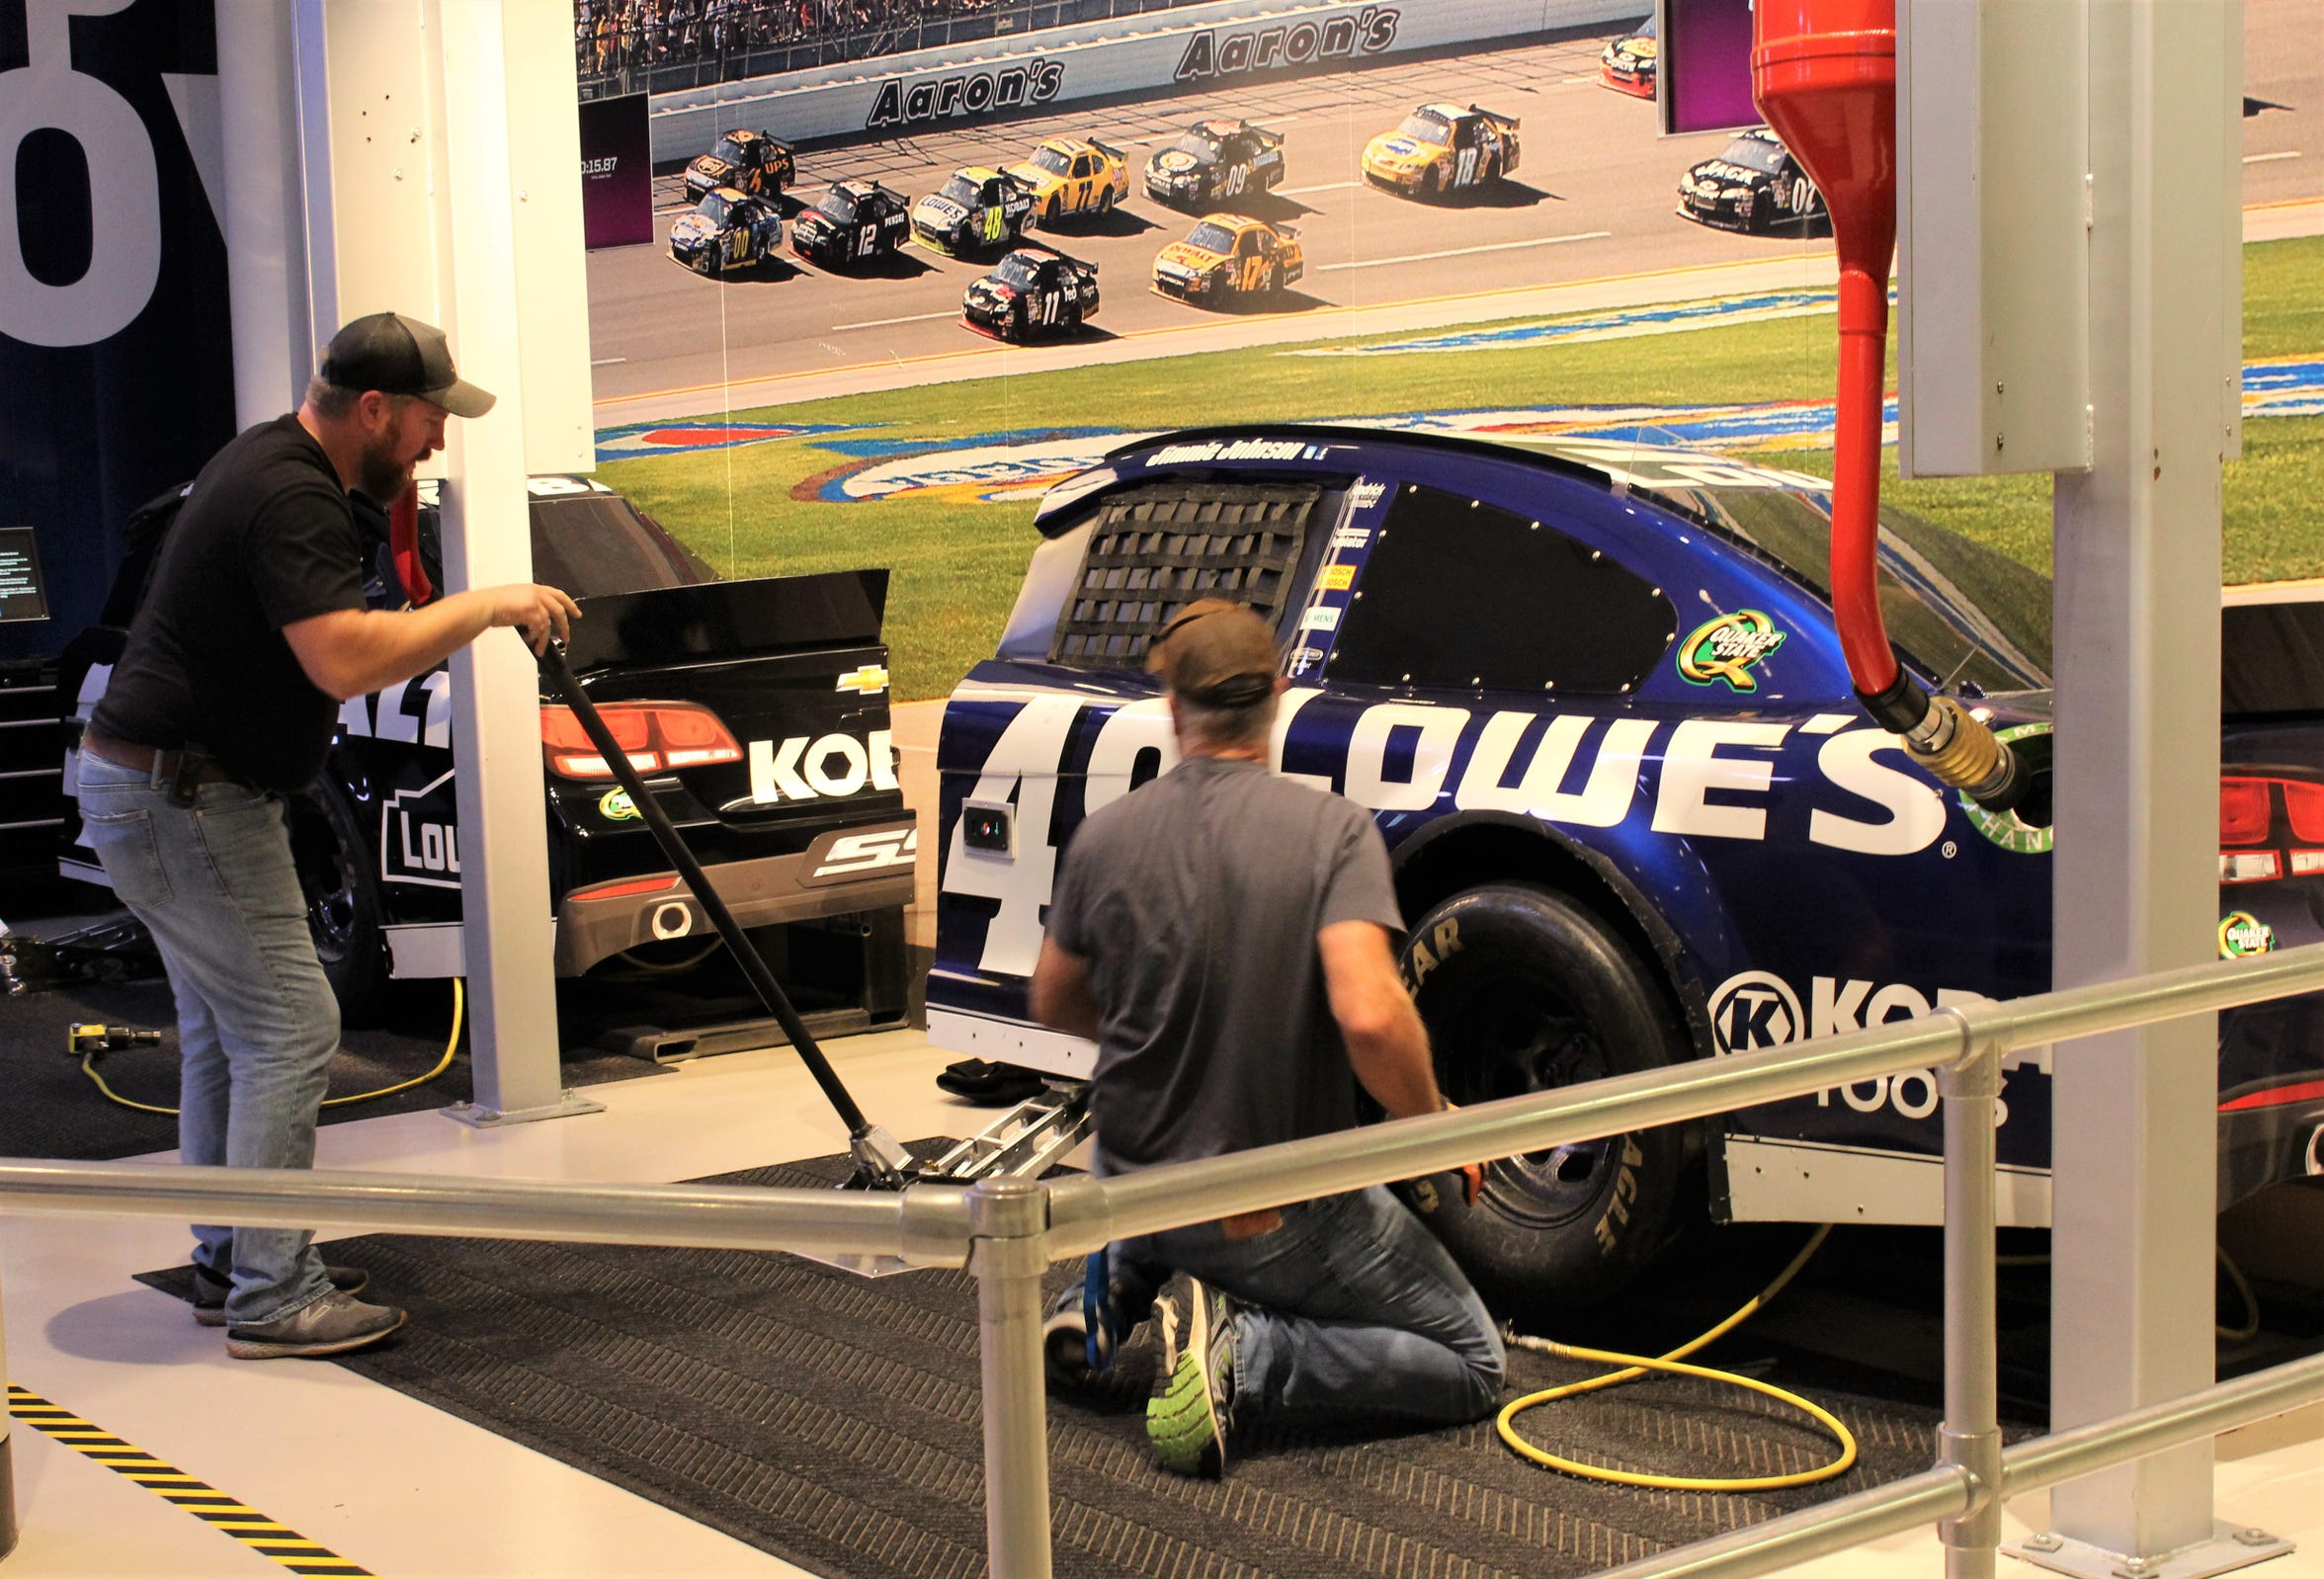 Hands-on activities at the NASCAR Hall of Fame include a timed pit stop, where participants can change a tire and top off of the tank, hopefully under 15 seconds.